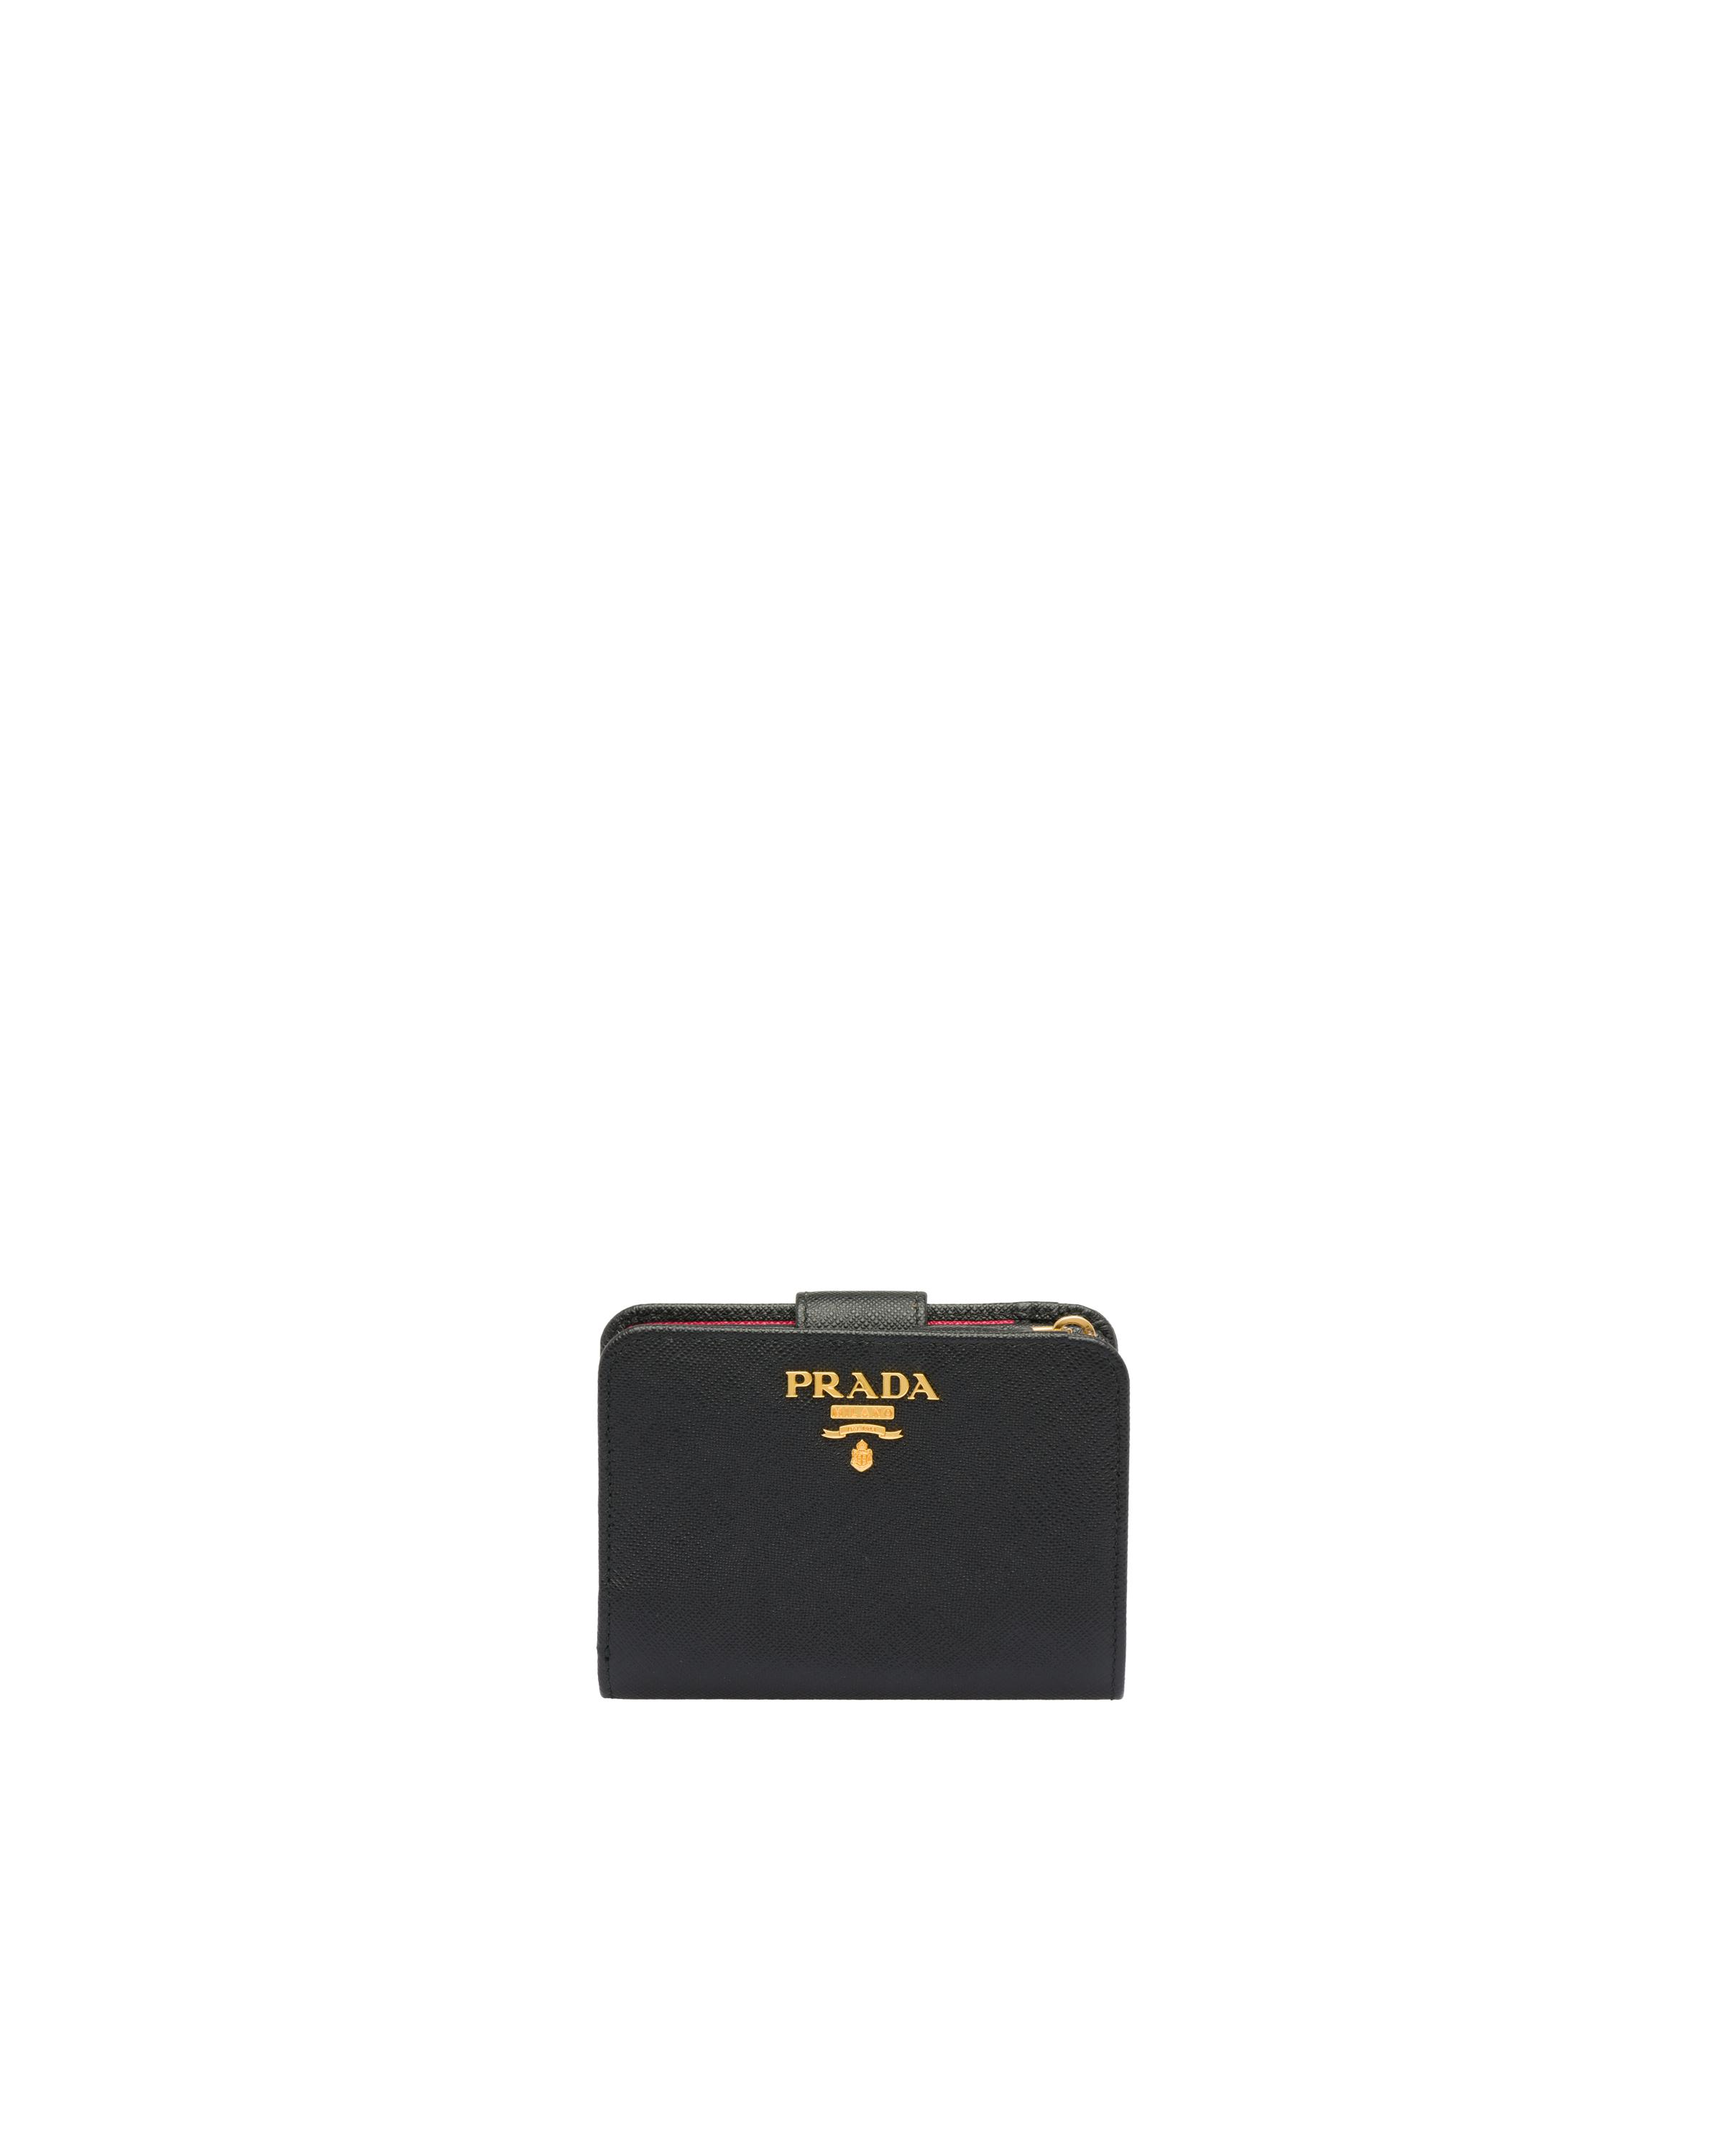 Small Saffiano Leather Wallet Women Black/hibiscus 6